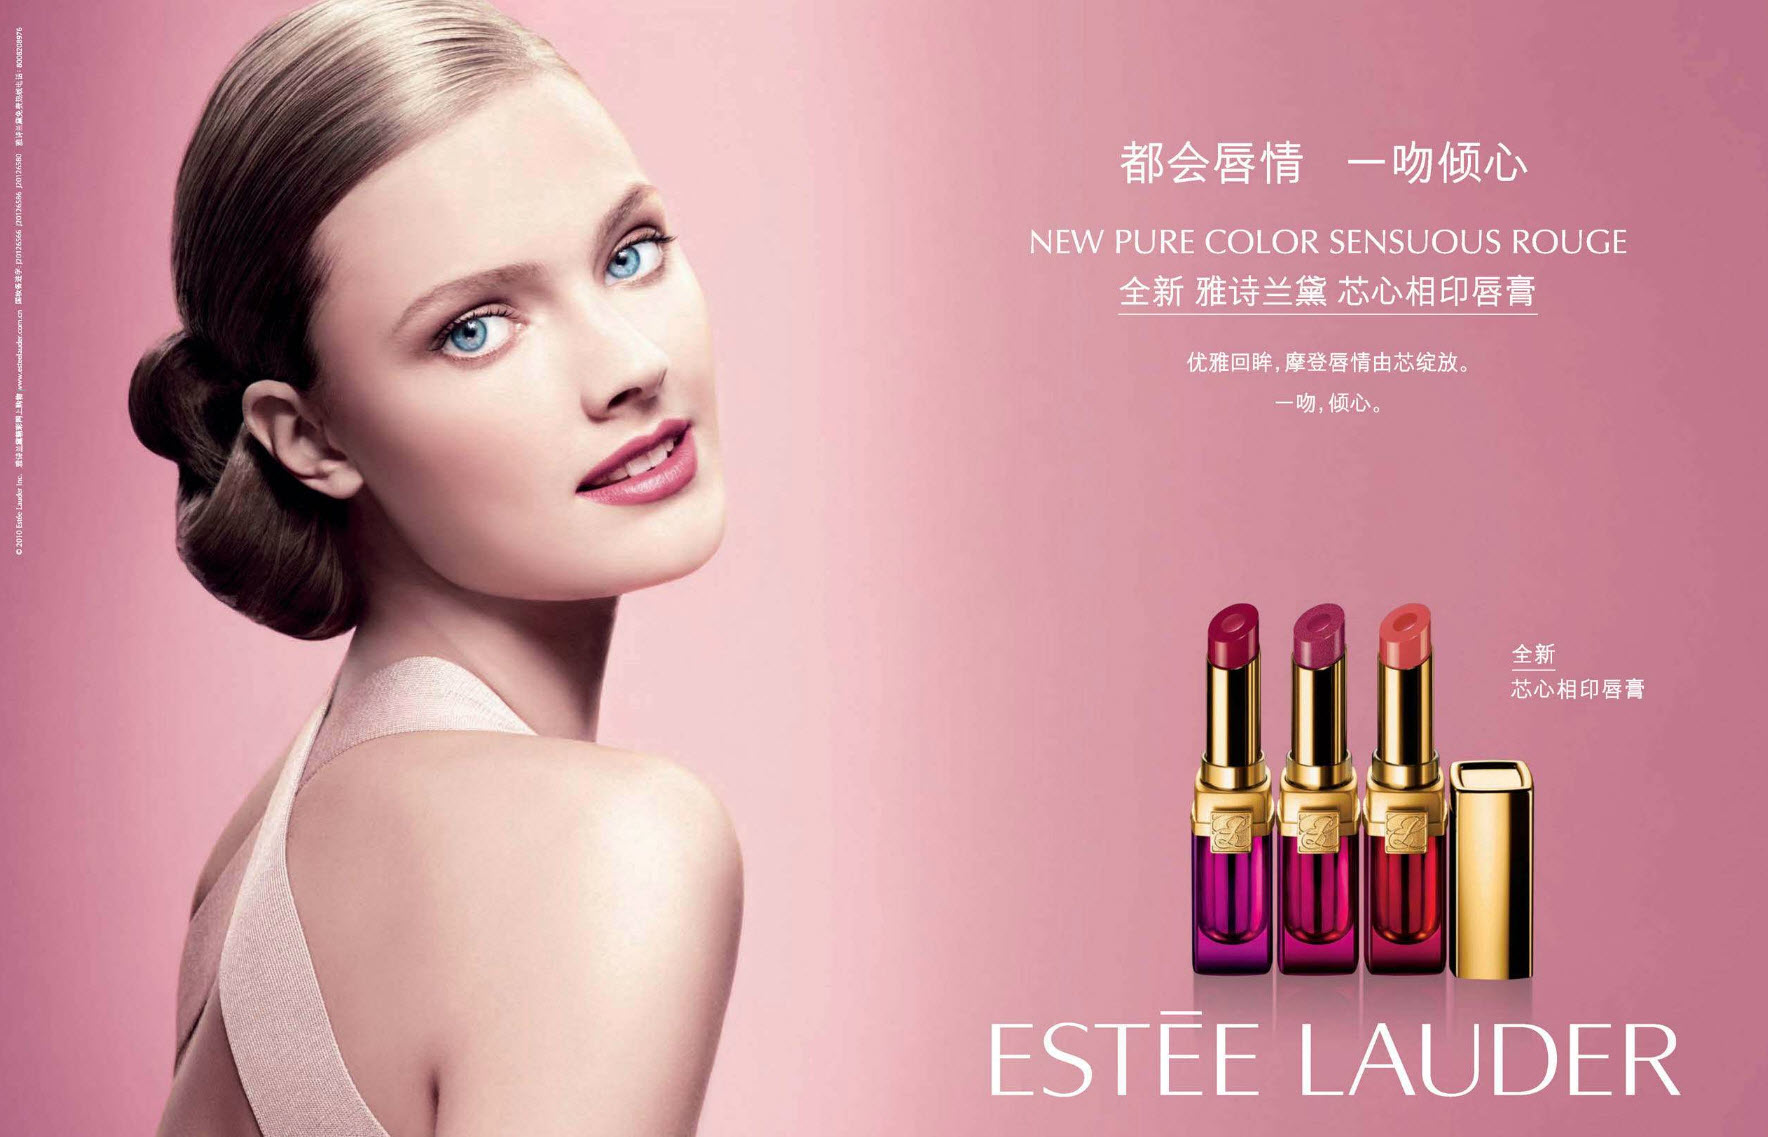 analysis of estee lauder A business analysis of the estee lauder cos inc, a global manufacturer and marketer of skin care, fragrance, makeup, and hair care products is provided, focusing on its strengths, weaknesses, opportunities for improvement and threats to the company.